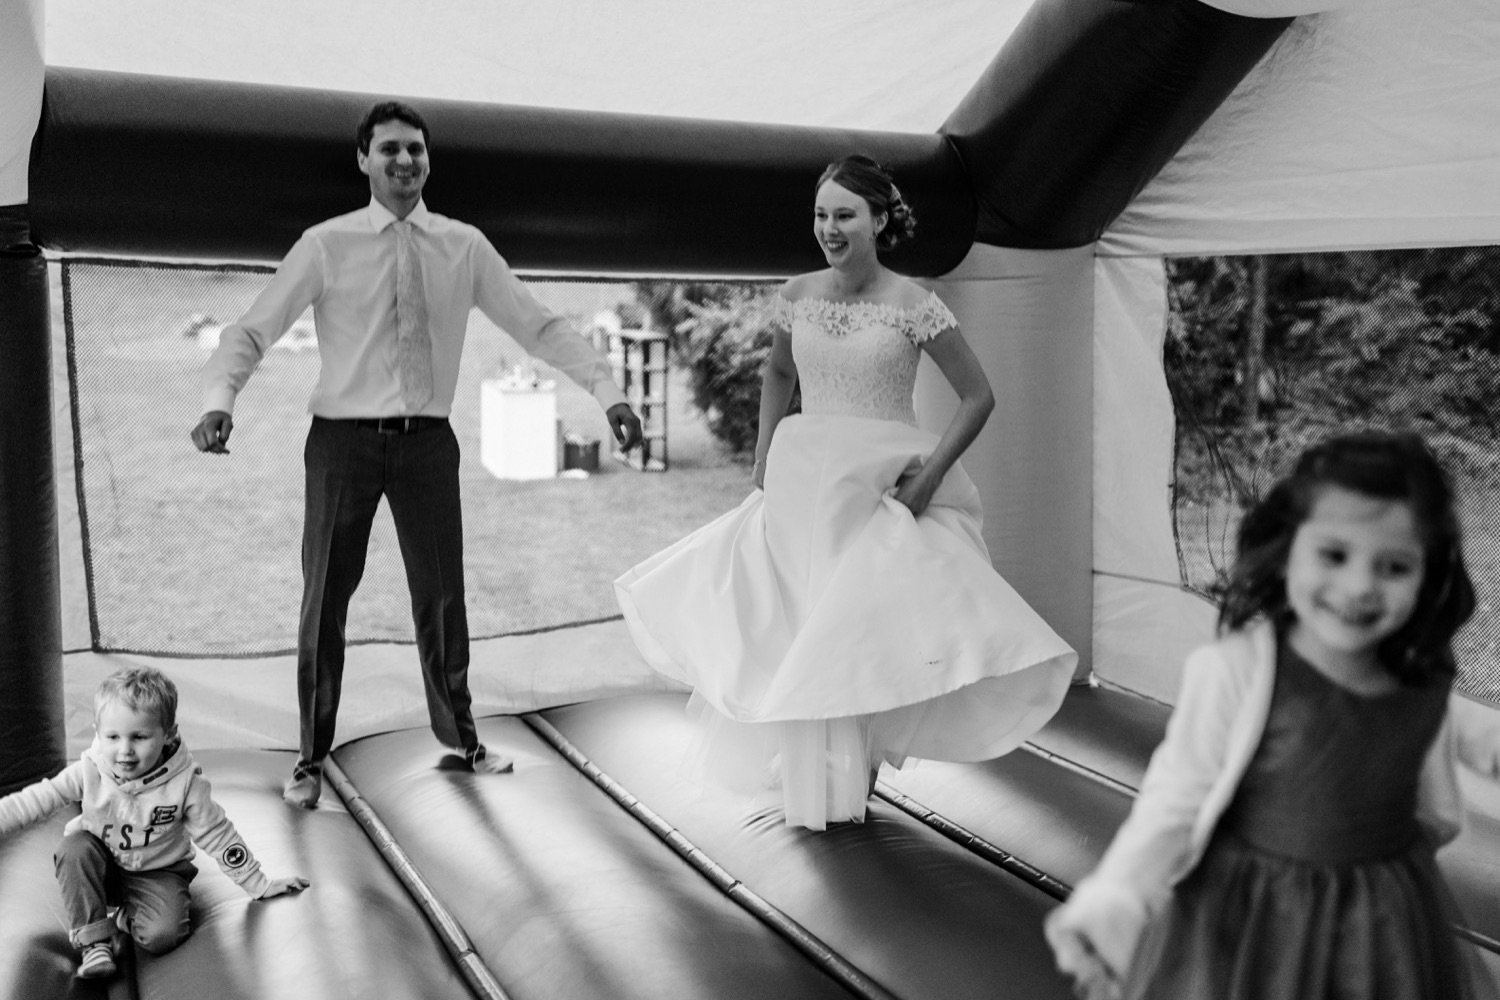 Bouncy Castle Wedding Photos